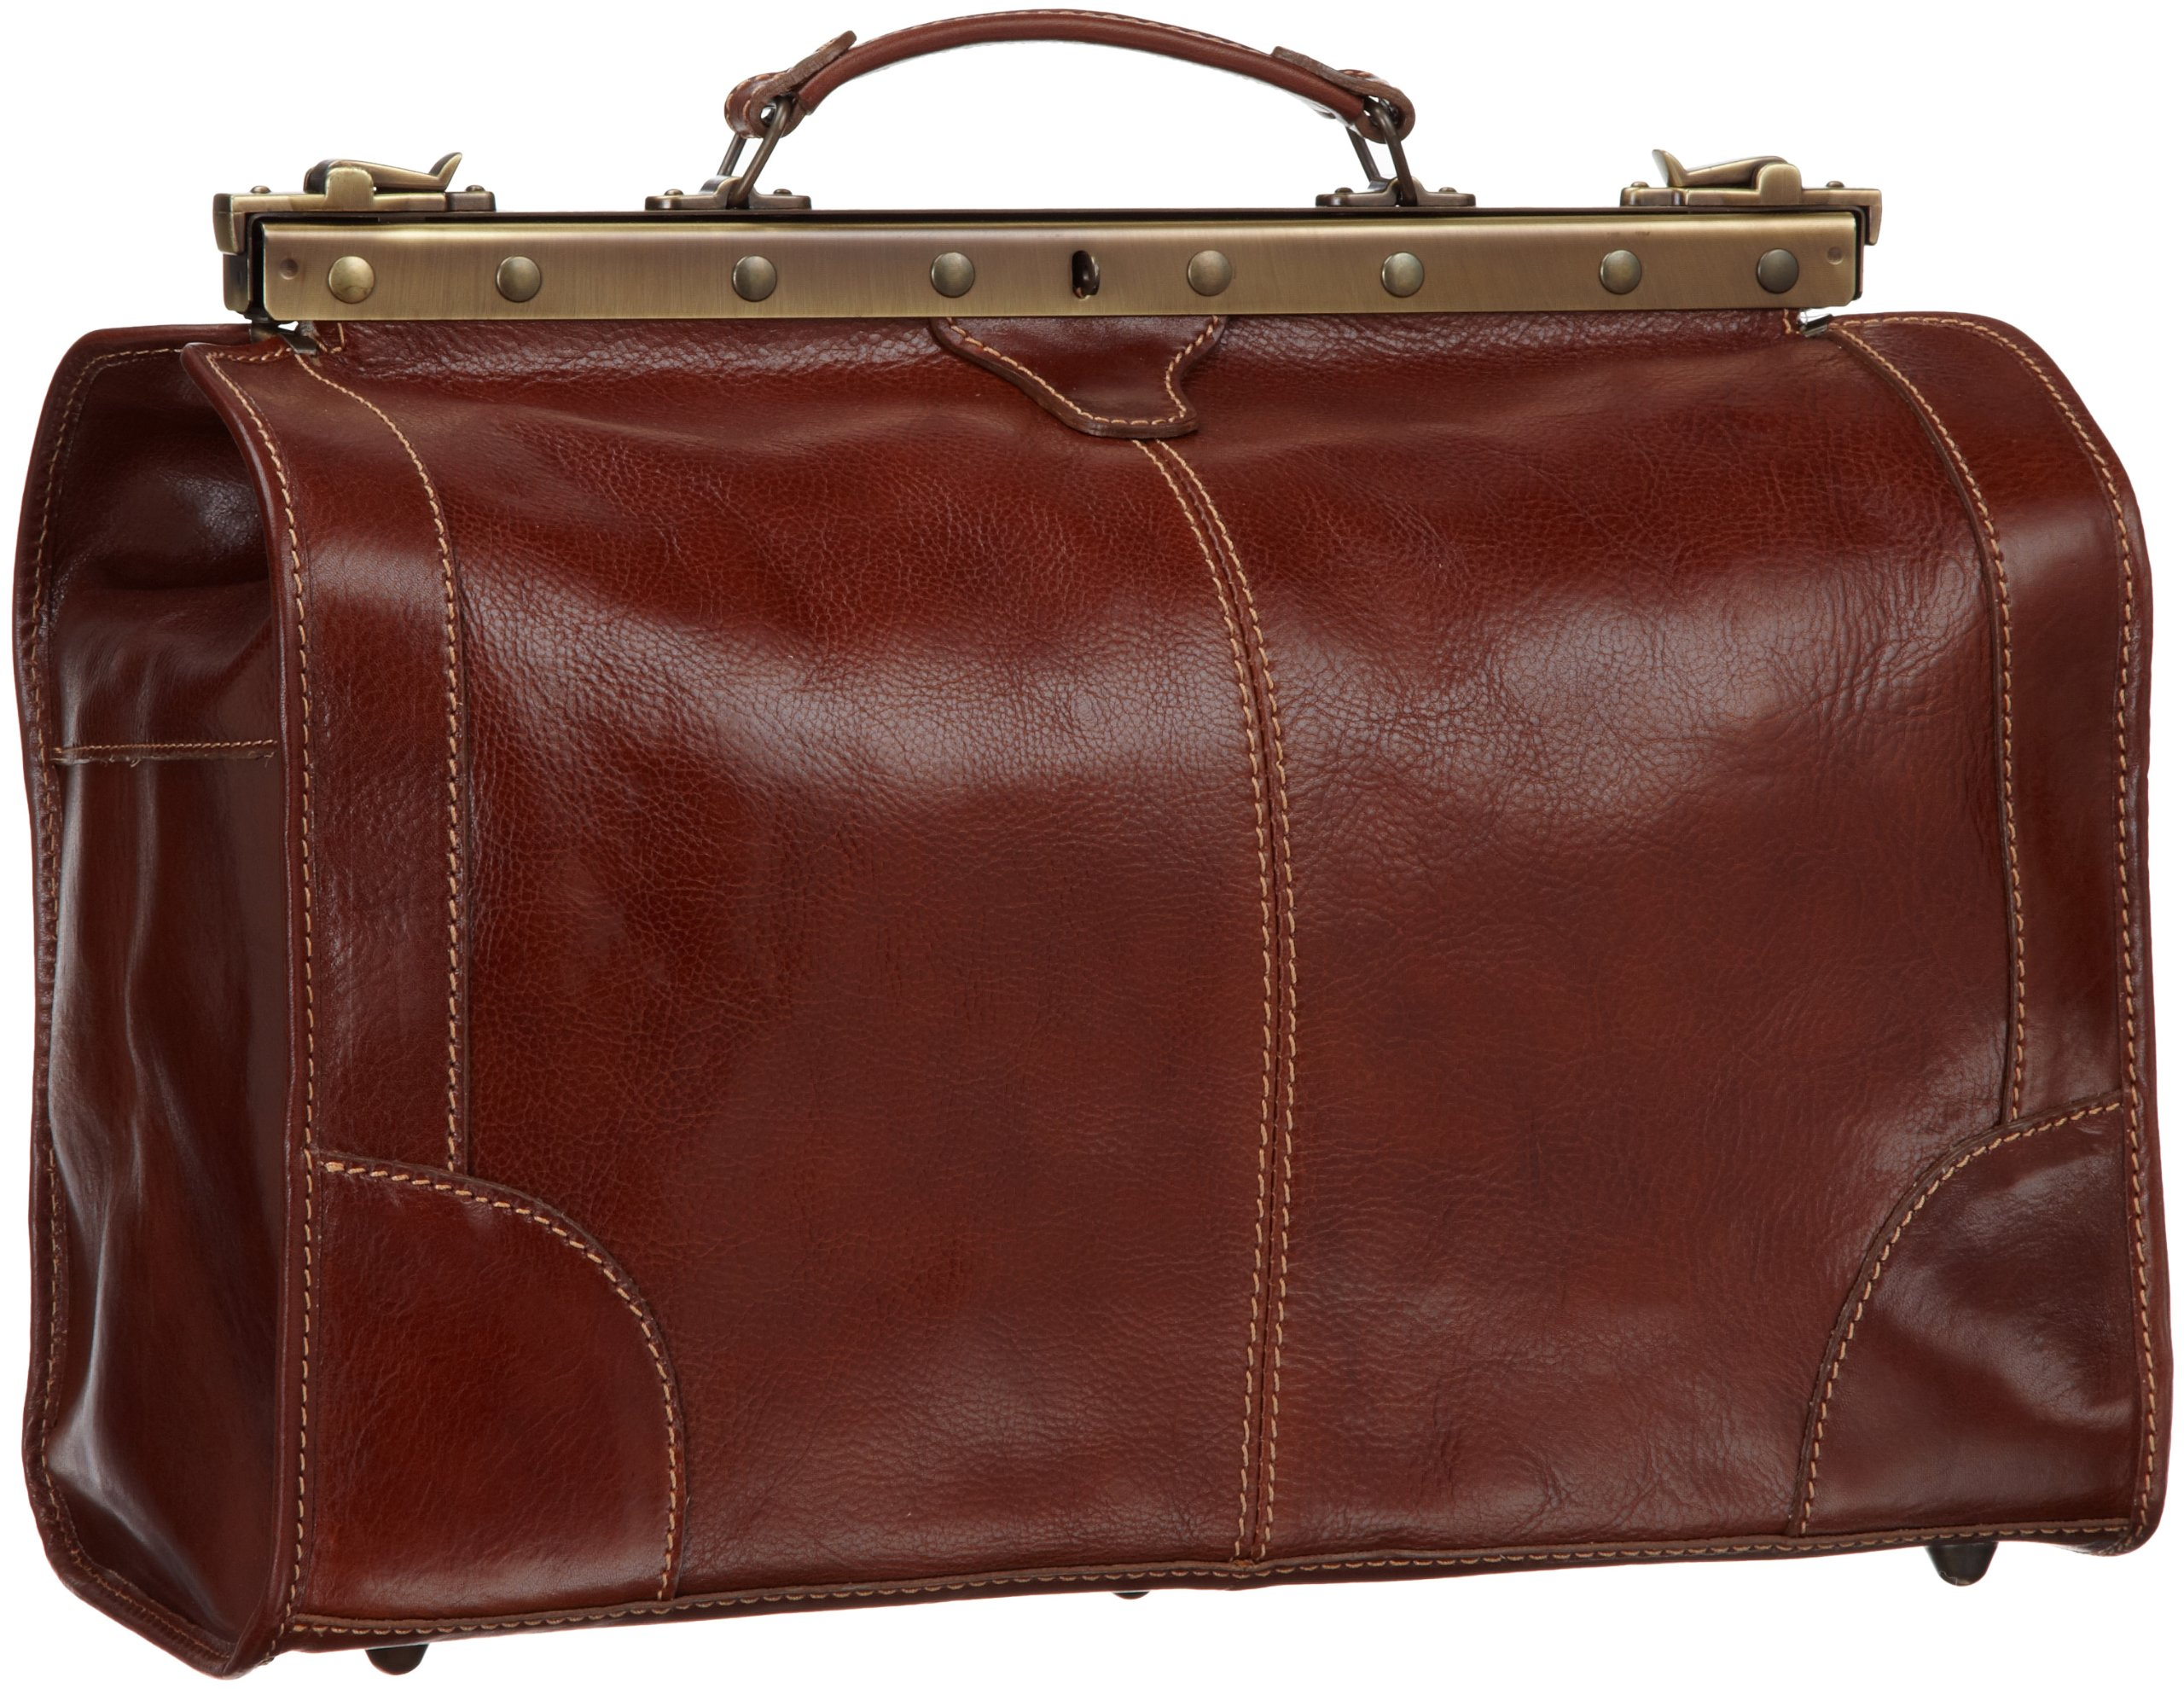 Floto Luggage Positano Duffle, Vecchio Brown, One Size